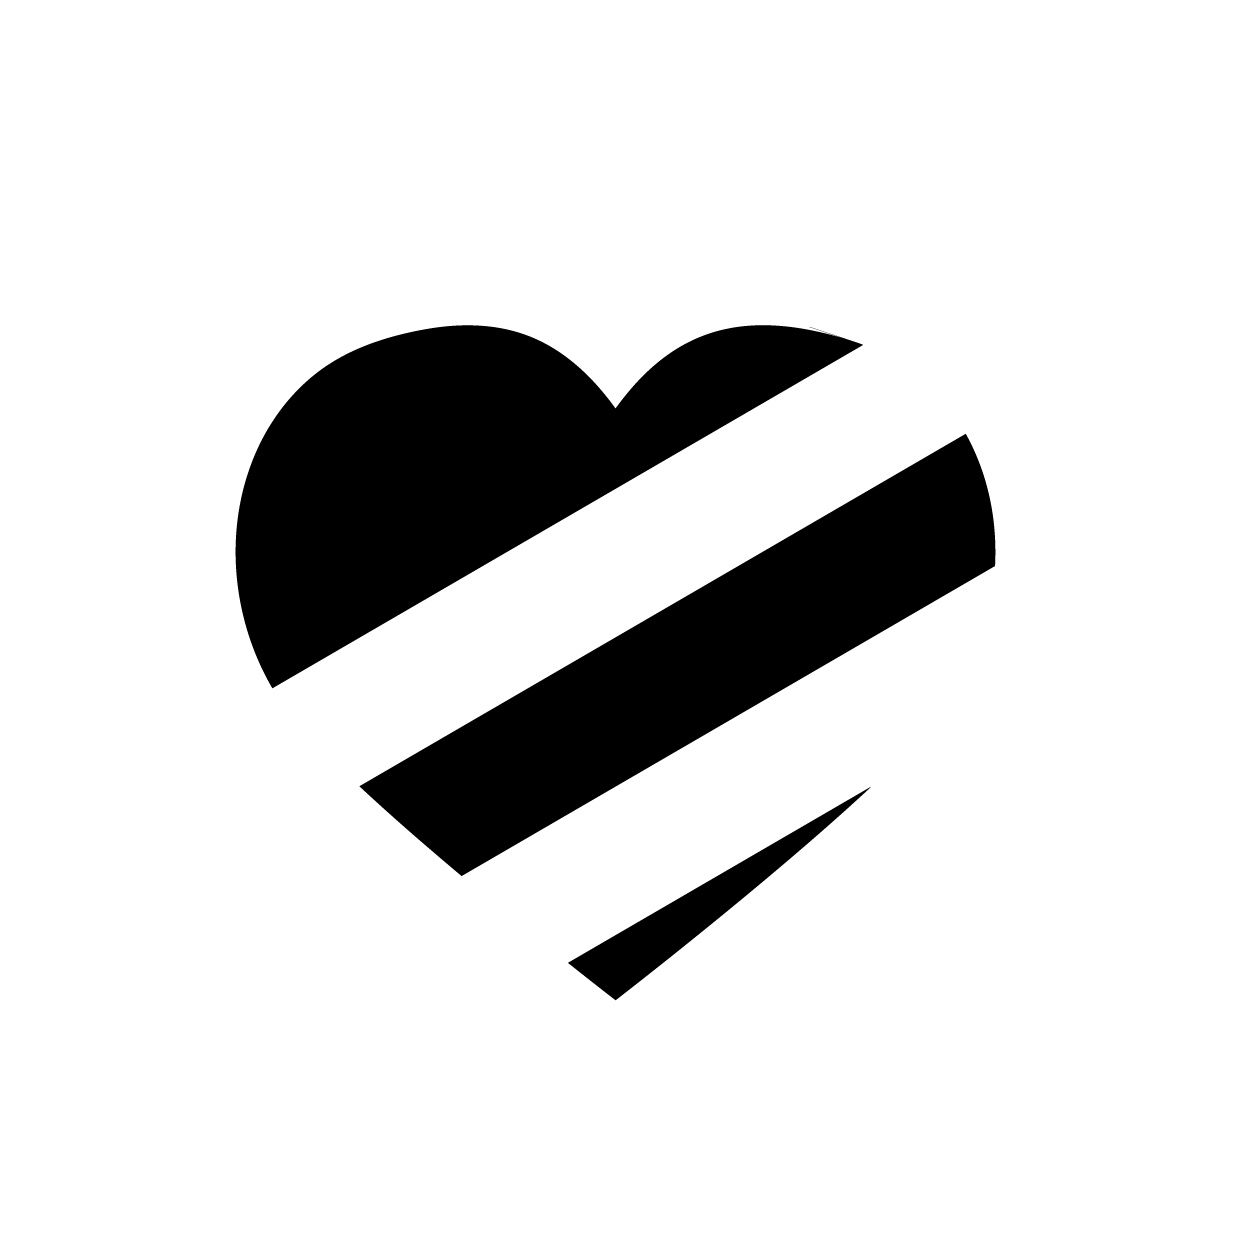 The Striped Heart